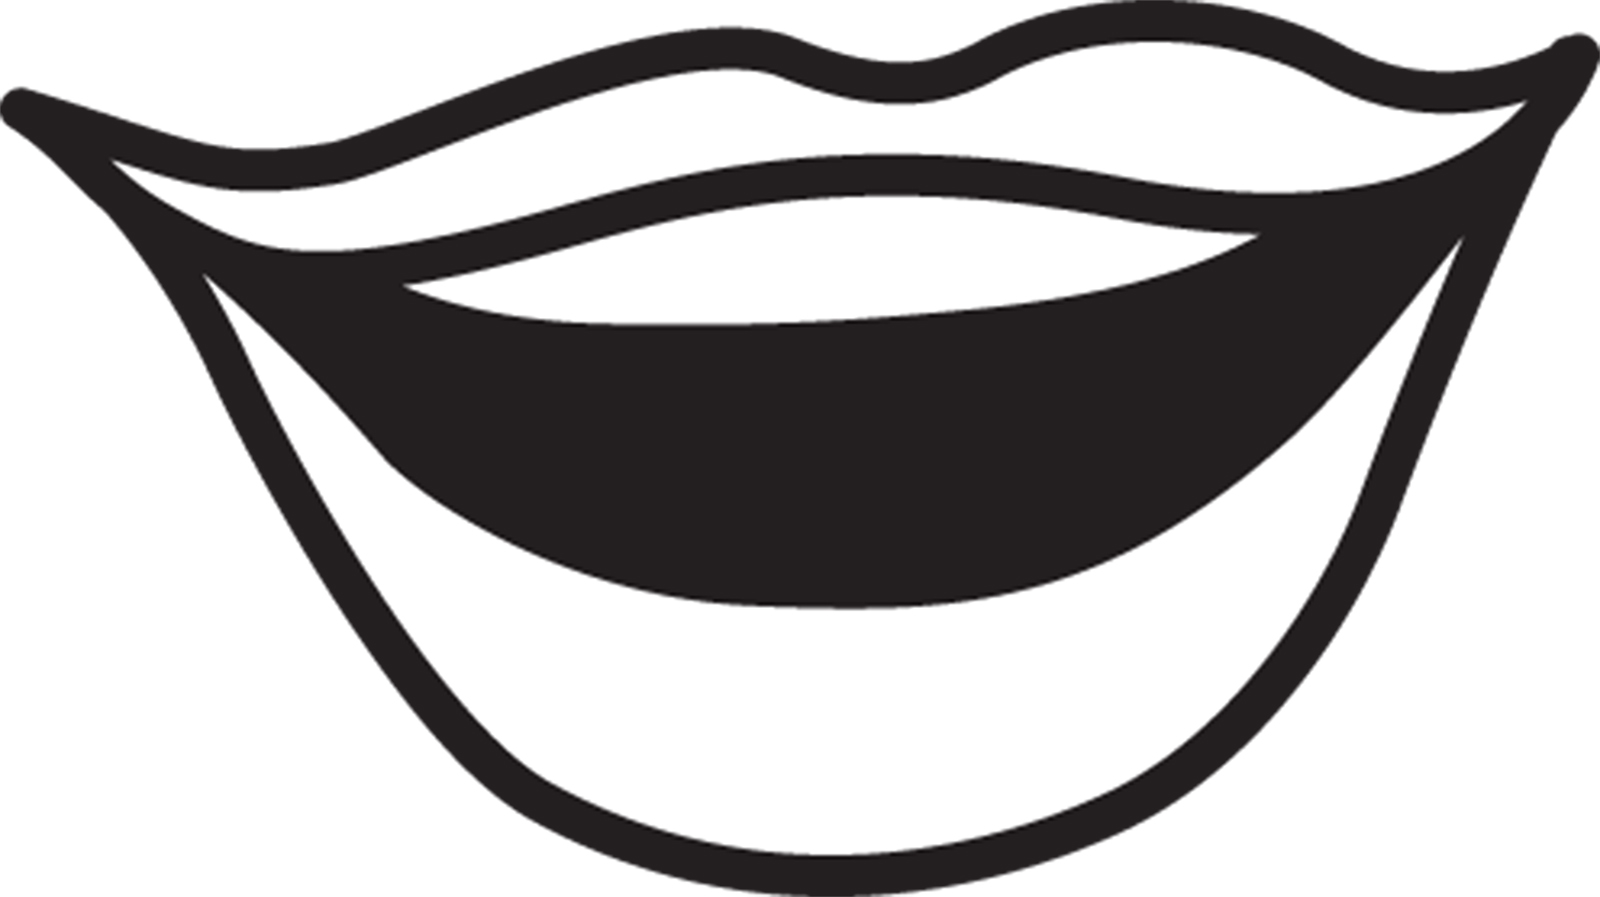 Mouth Clip Art Black And White-mouth clip art black and white-3